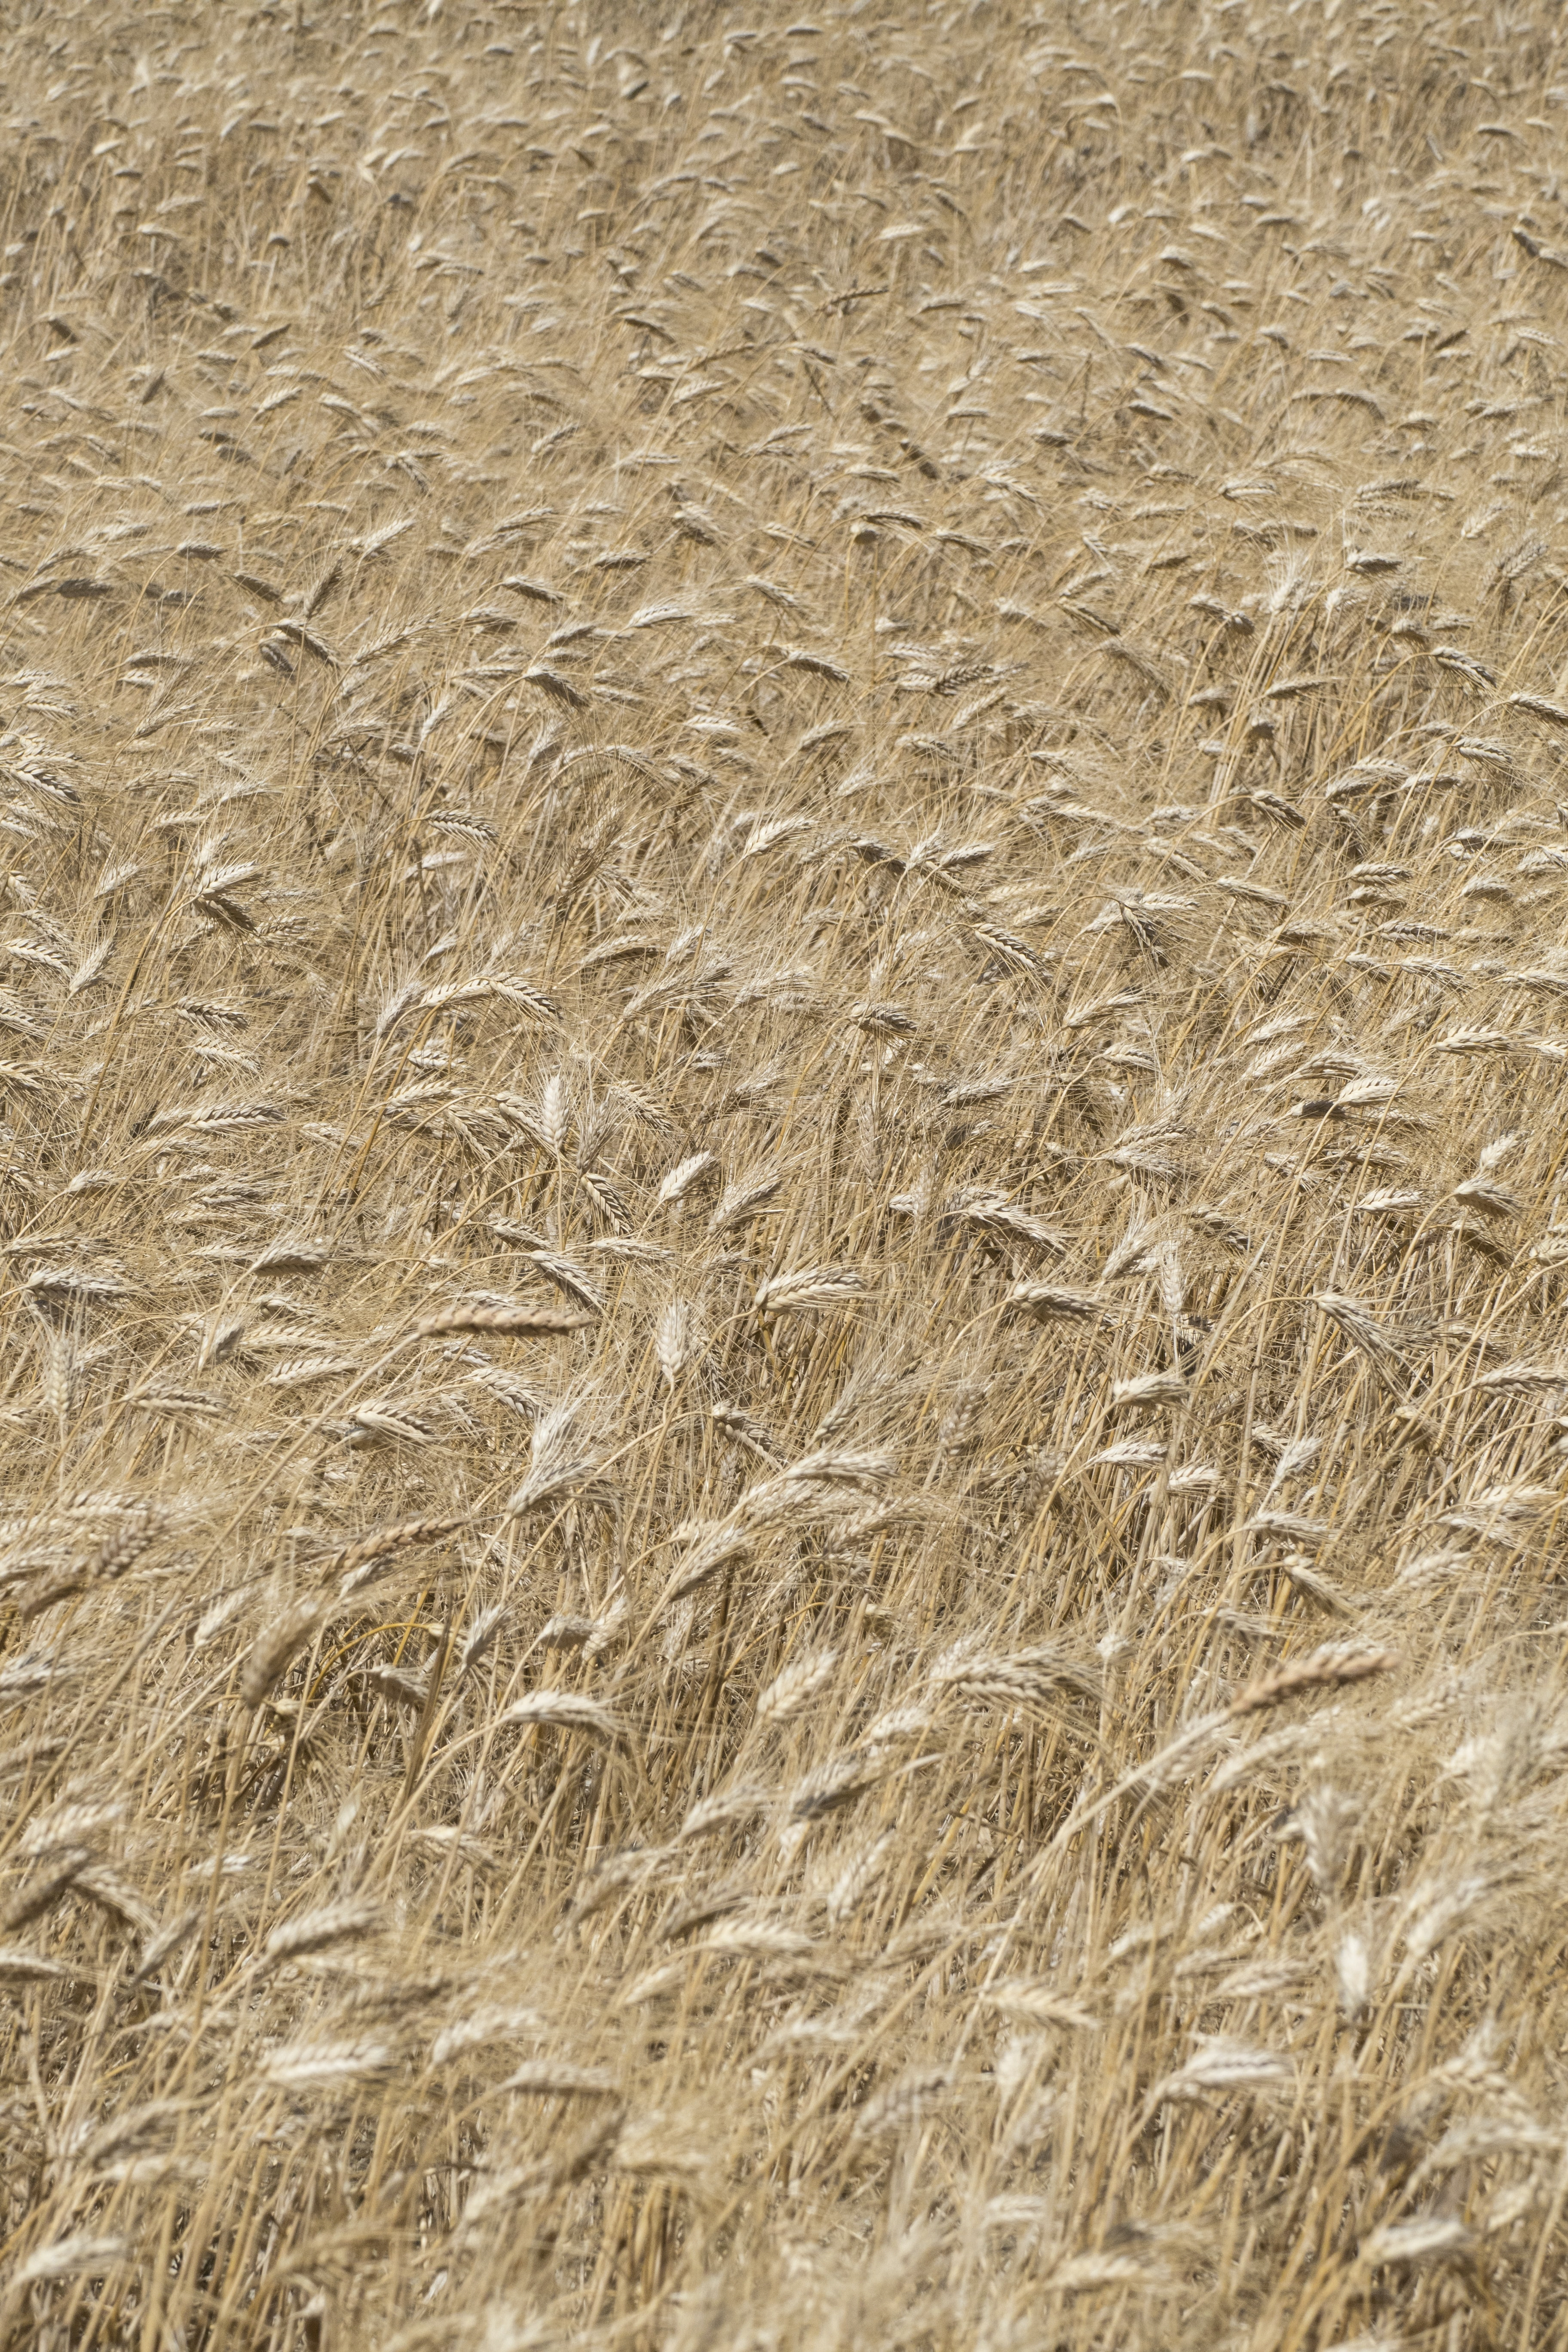 brown wheat fields